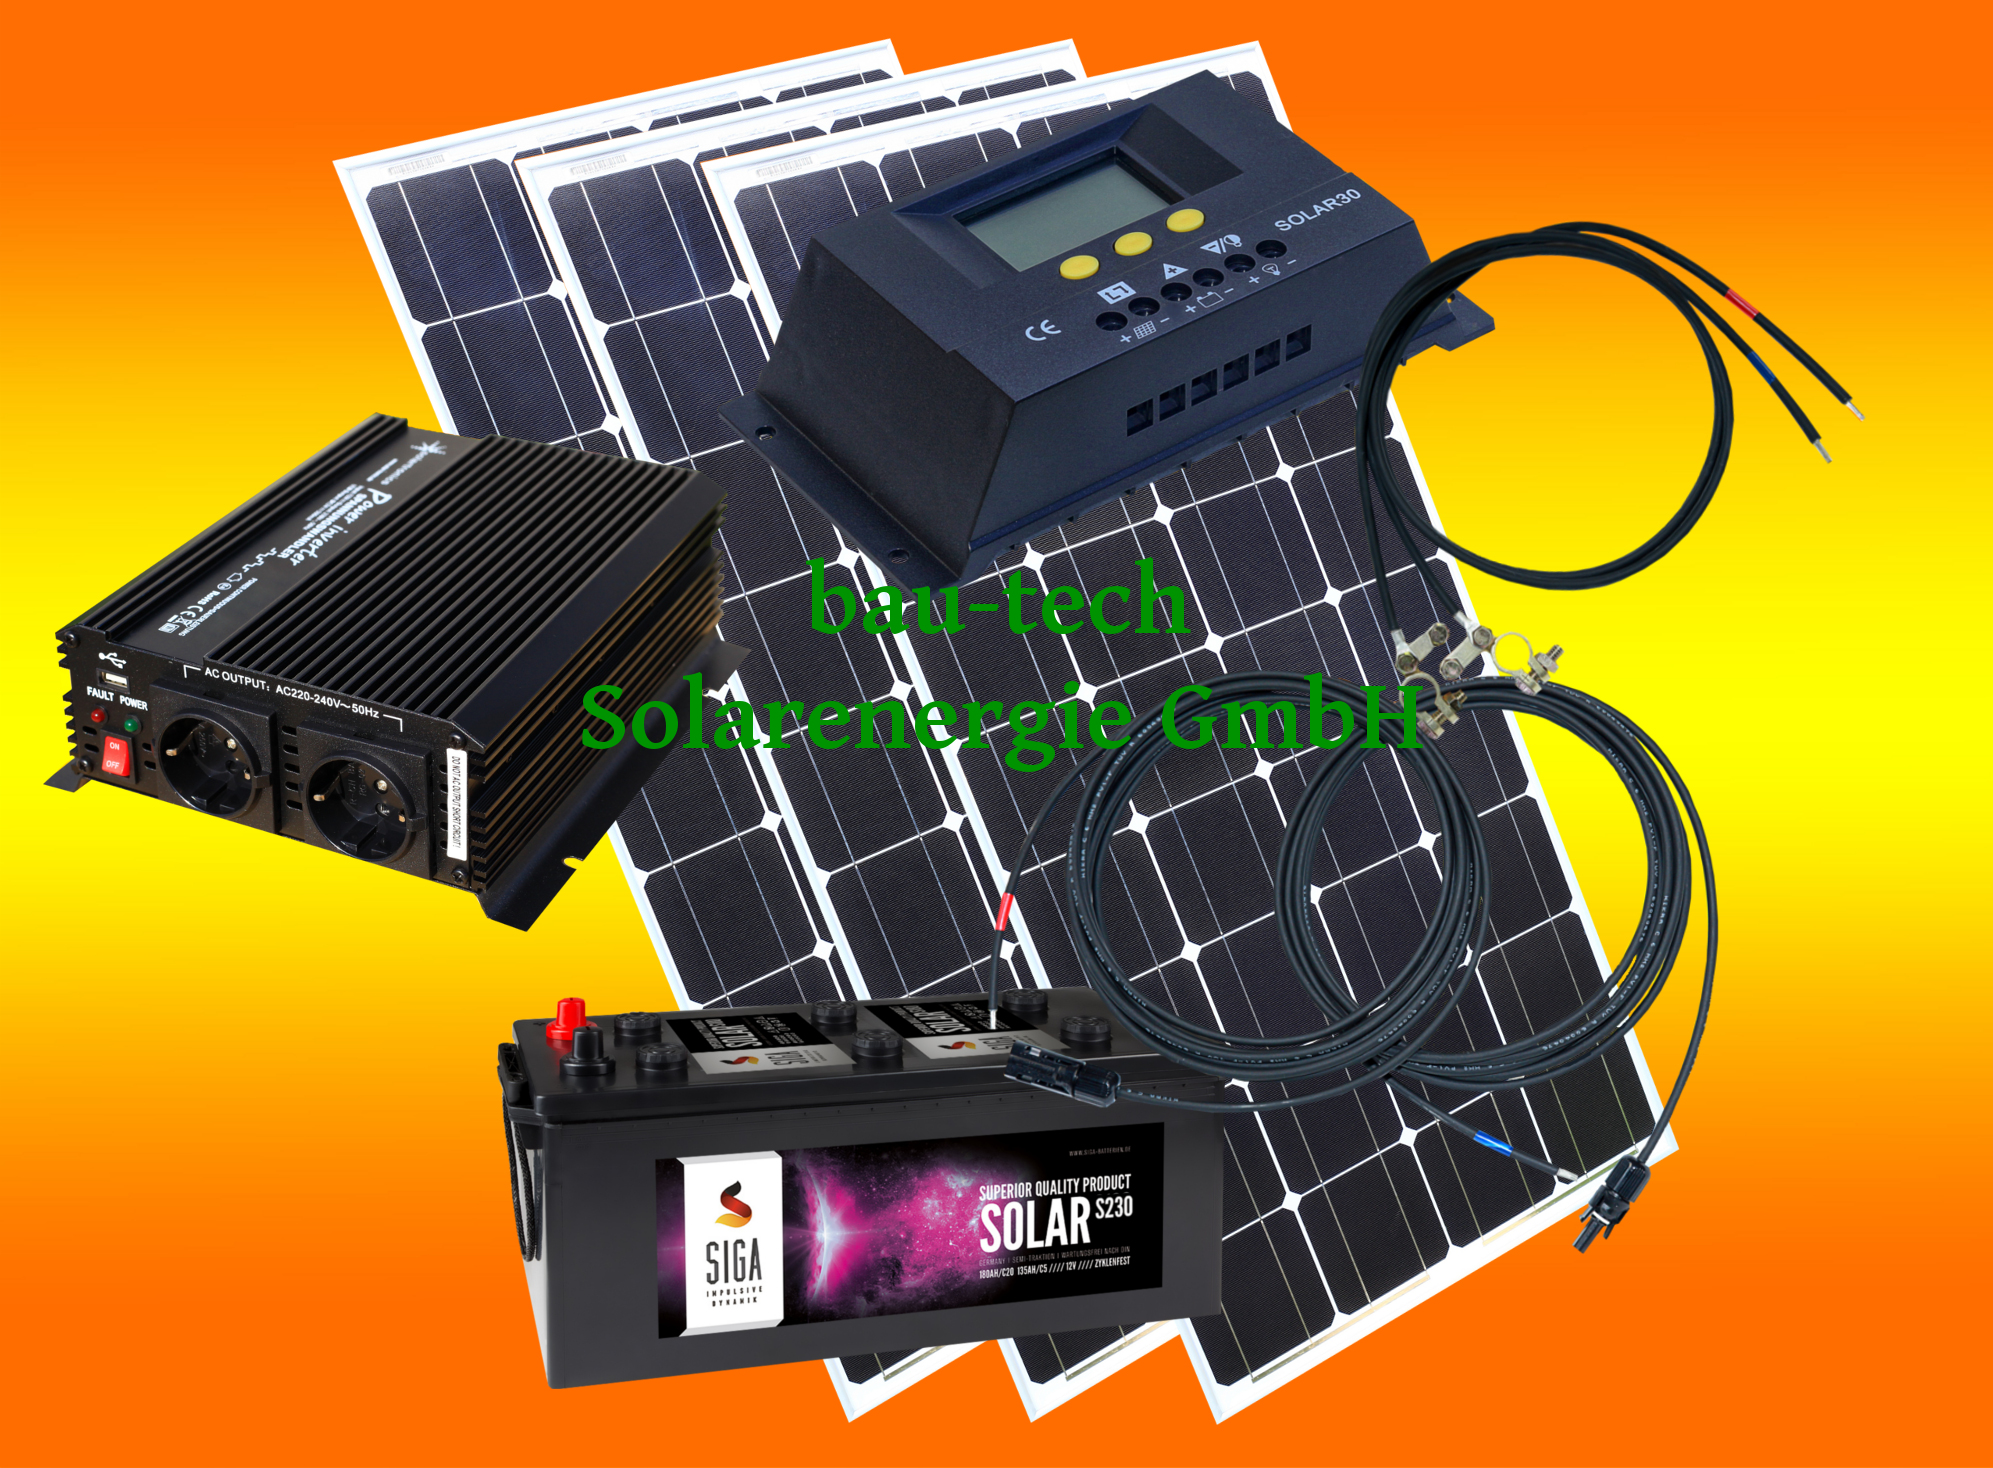 300 watt camping solaranlage 12 volt set mit spannungswandler mit batterie ina0300wispb. Black Bedroom Furniture Sets. Home Design Ideas